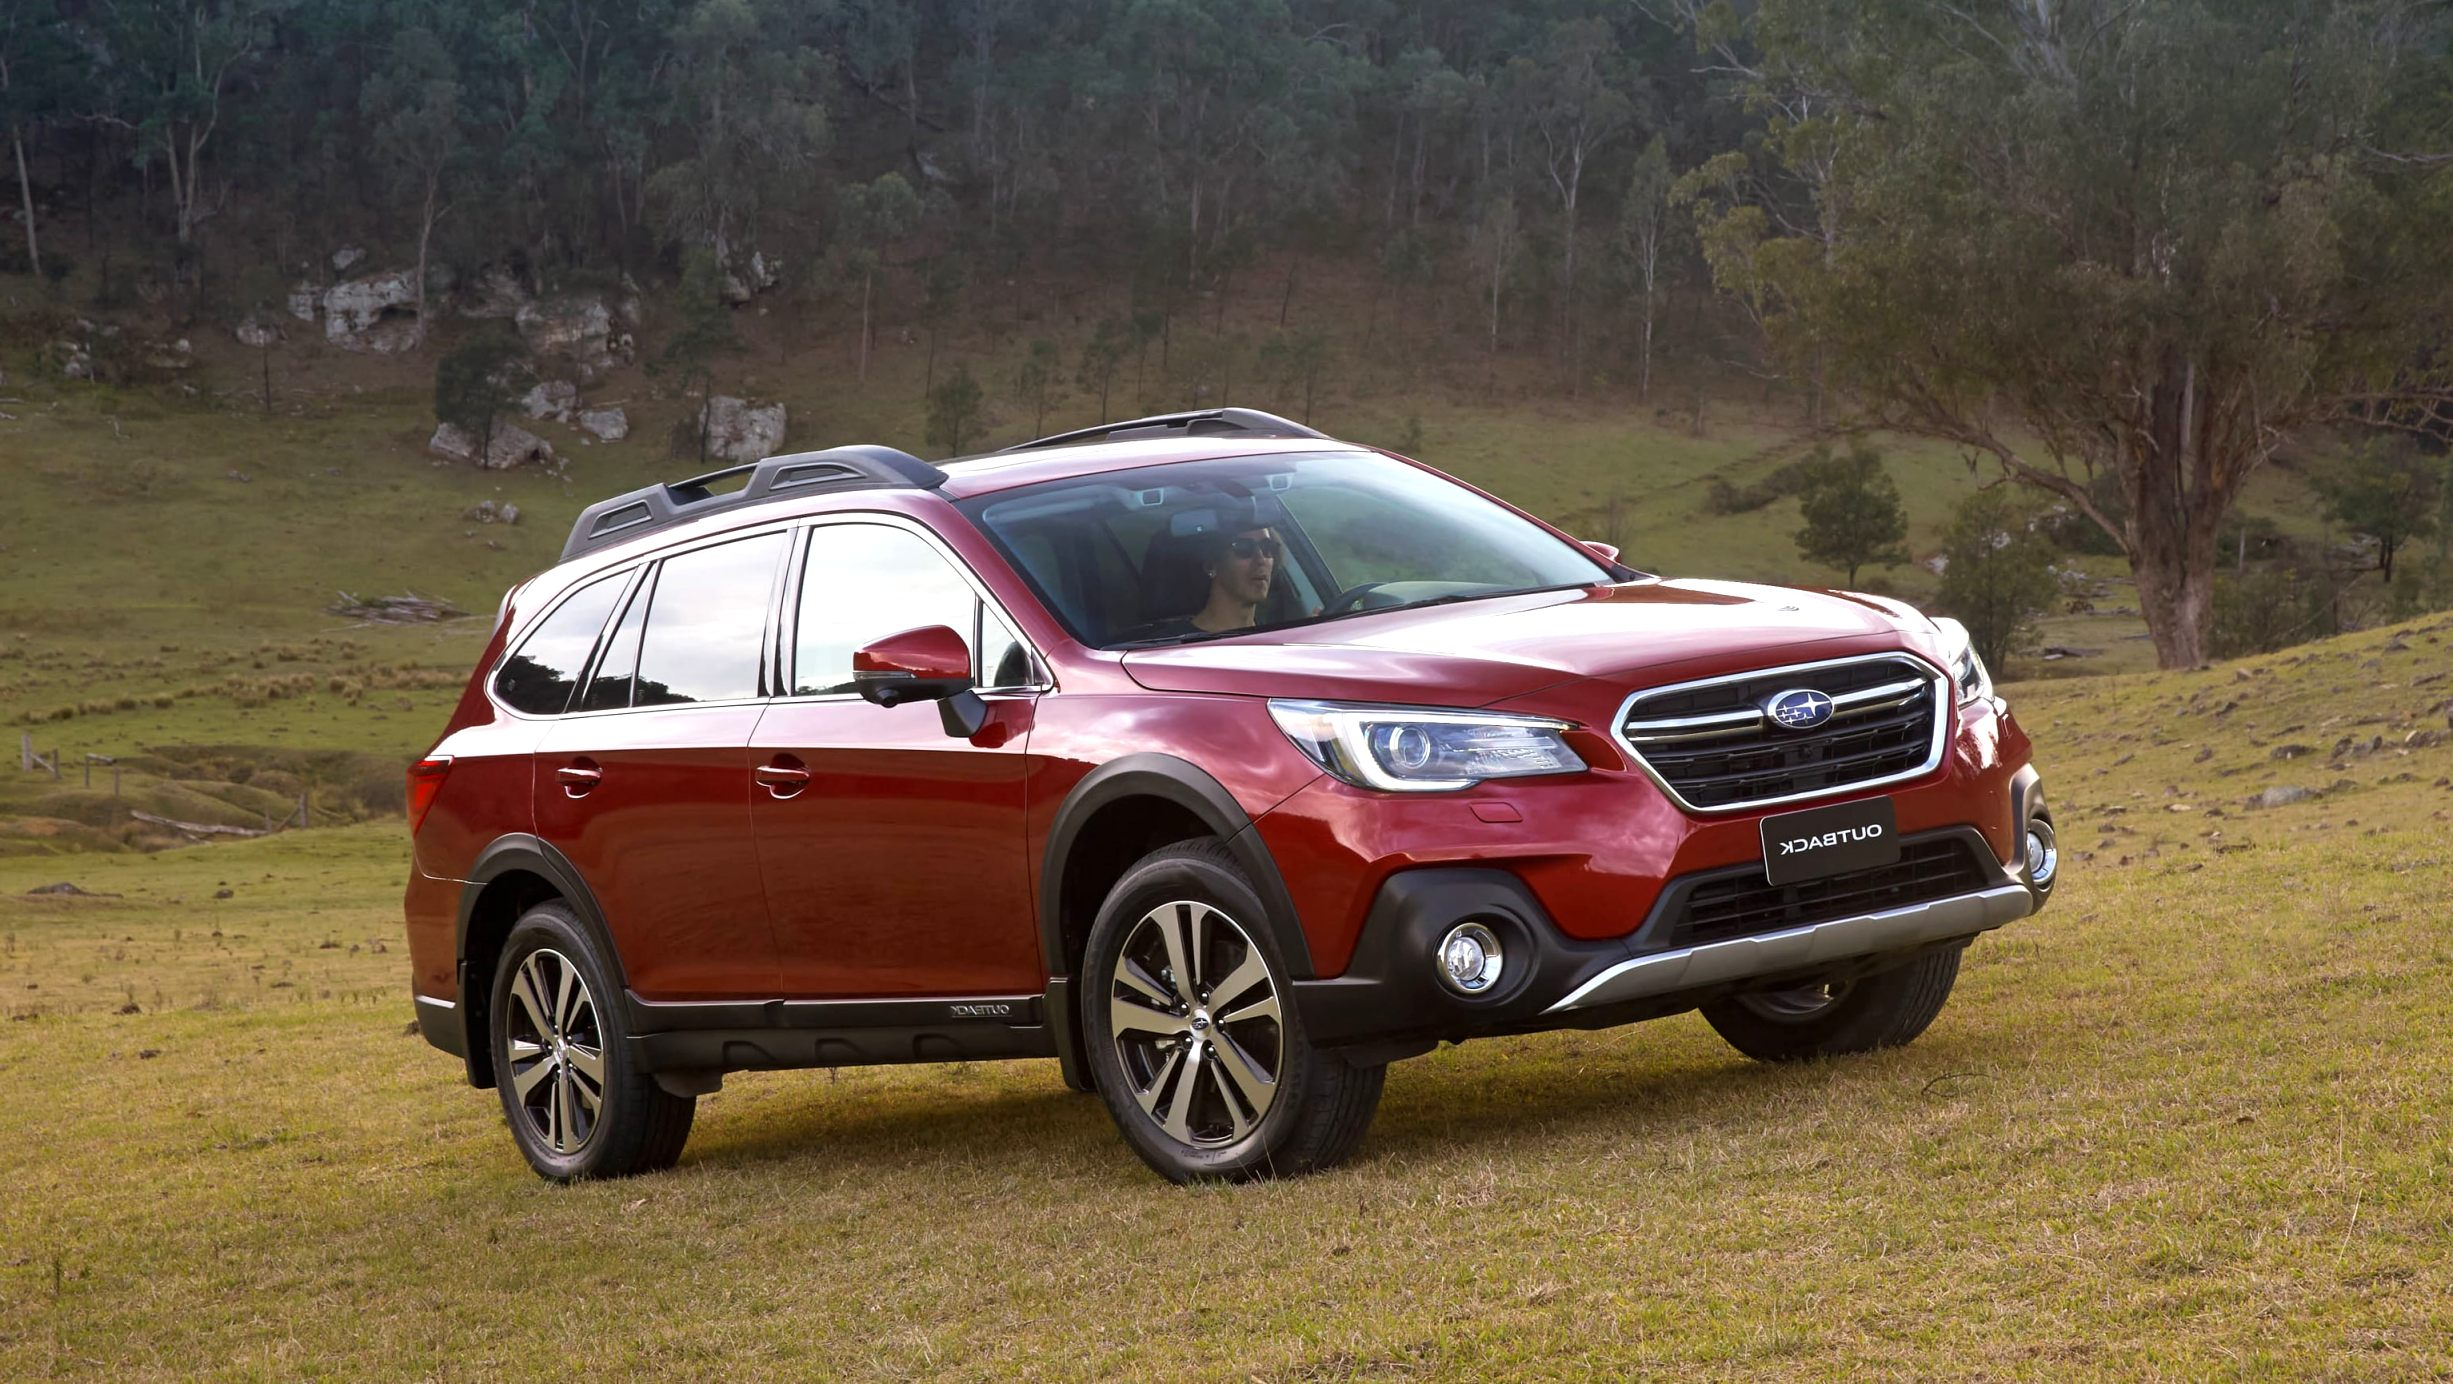 subaru outback colors 2020 Pictures